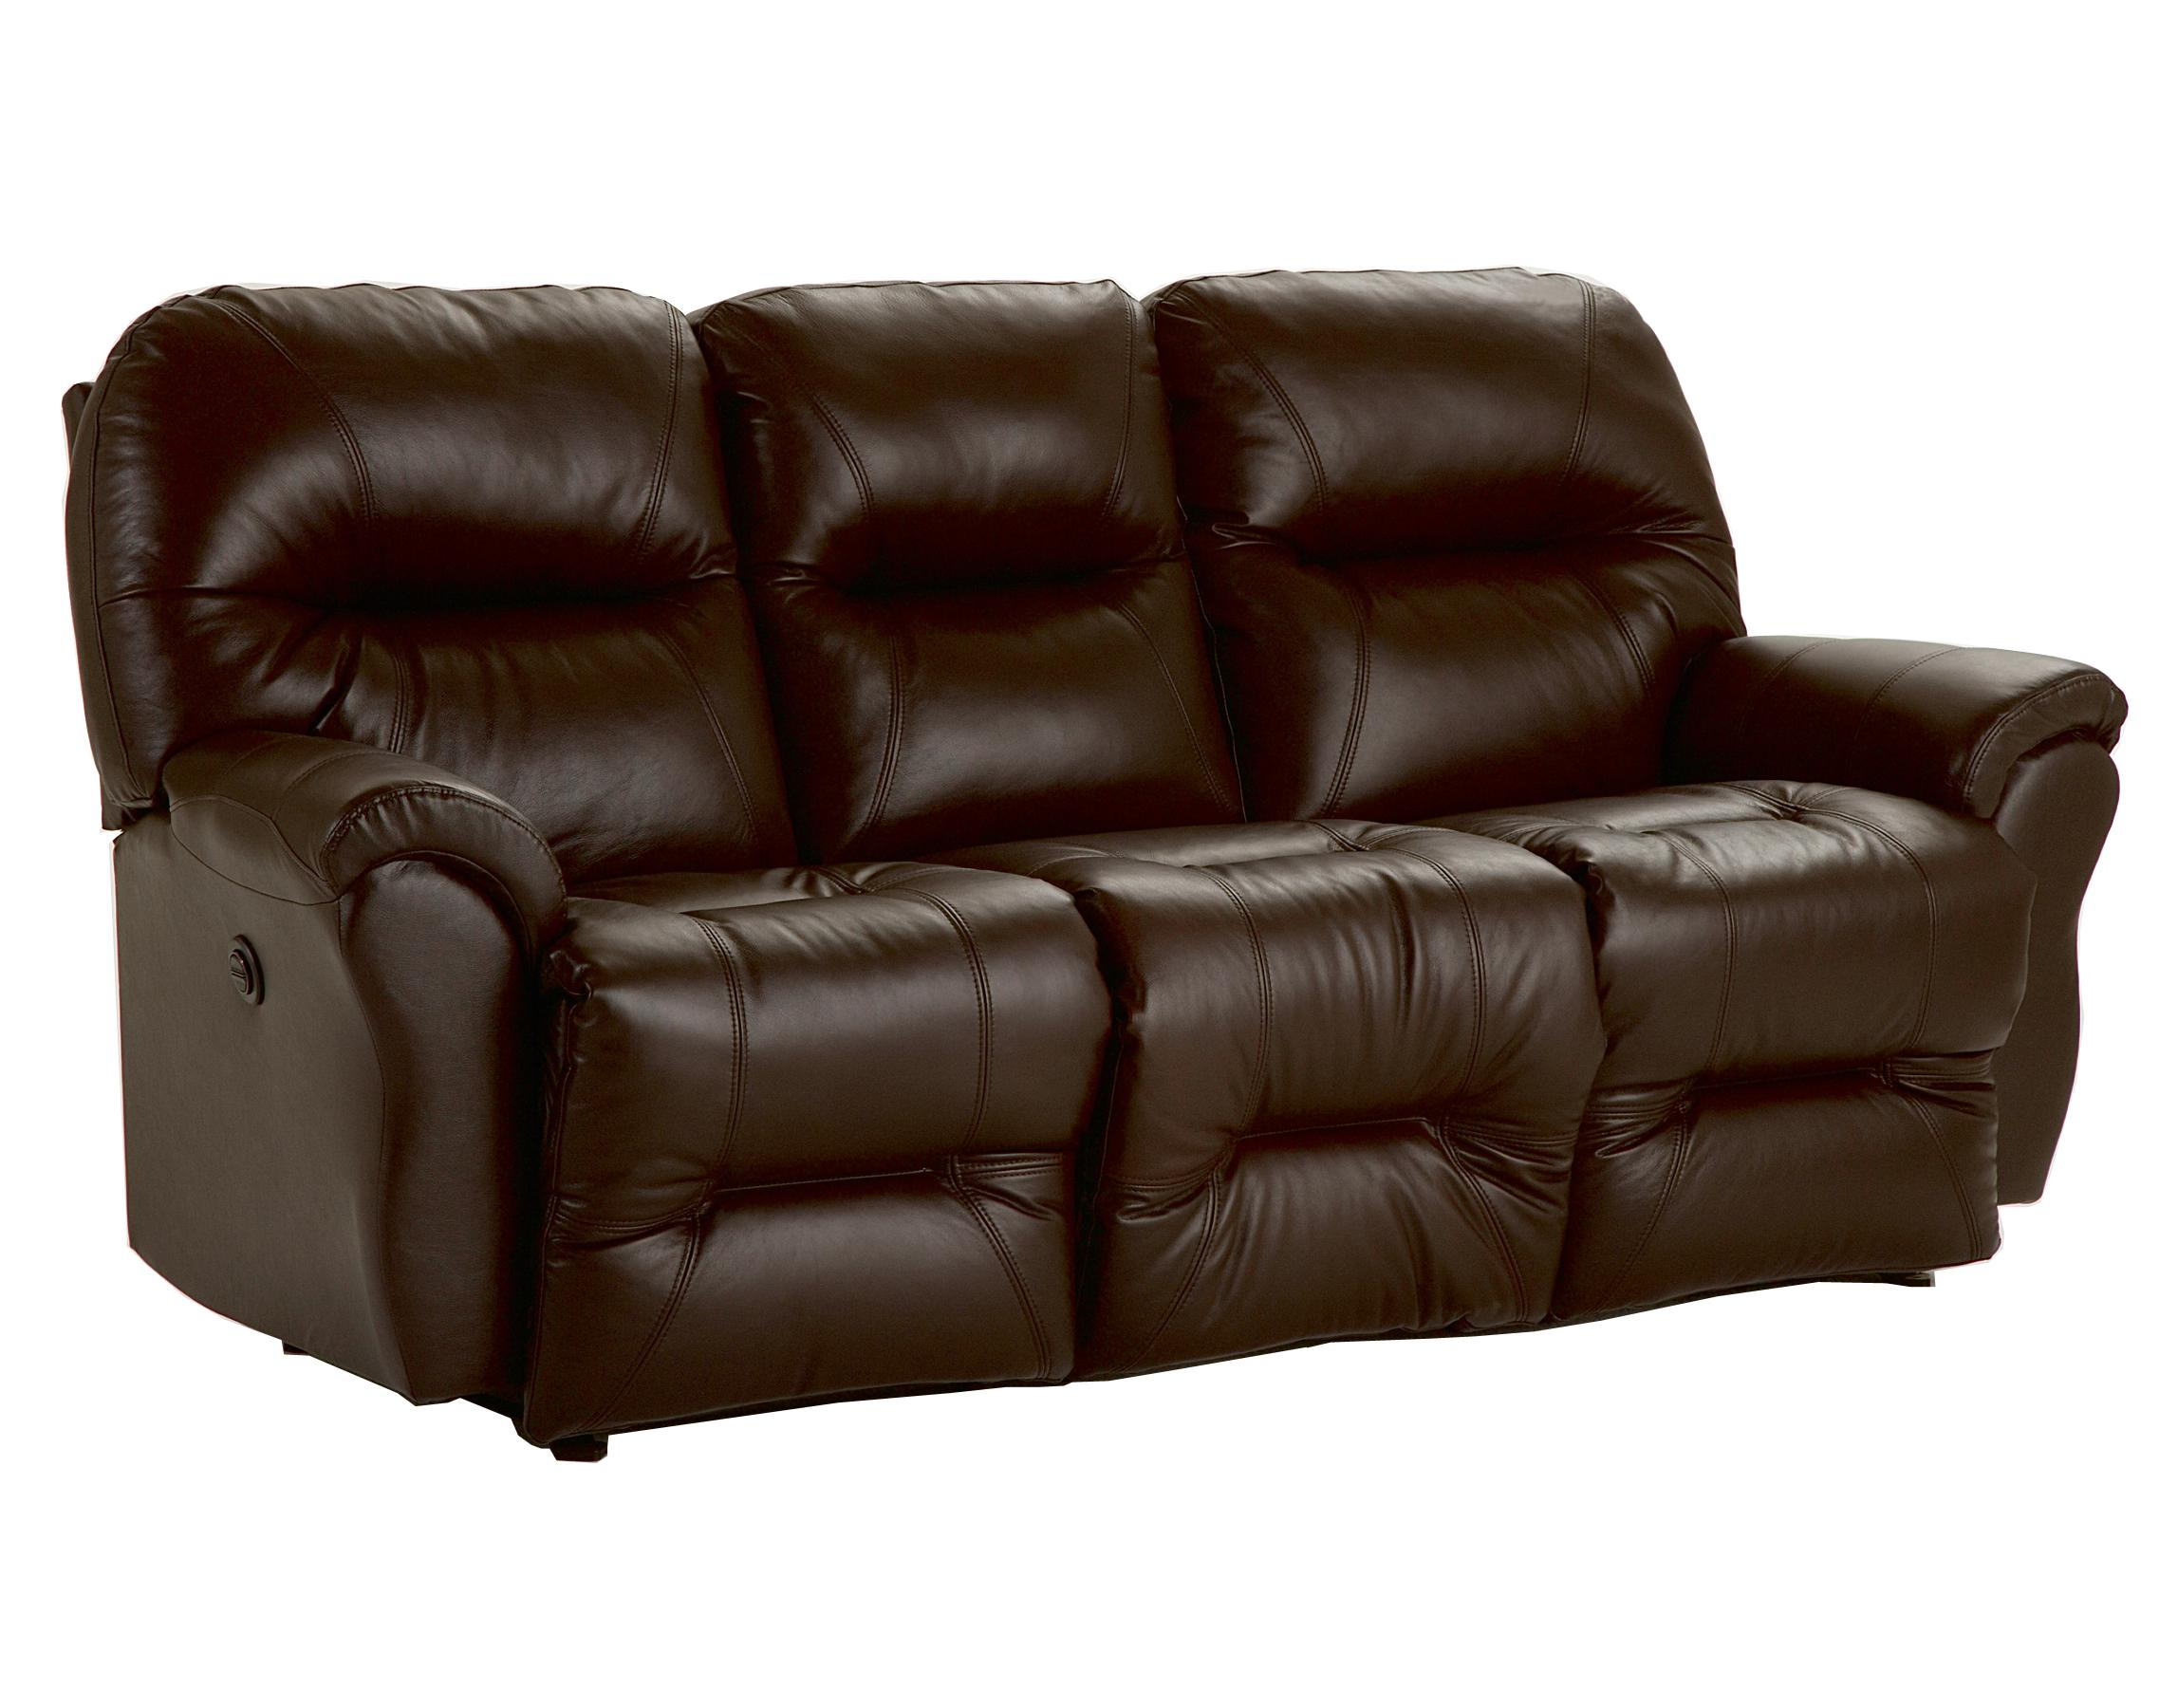 Best Home Furnishings Bodie Power Motion Sofa - Item Number: S760CP4